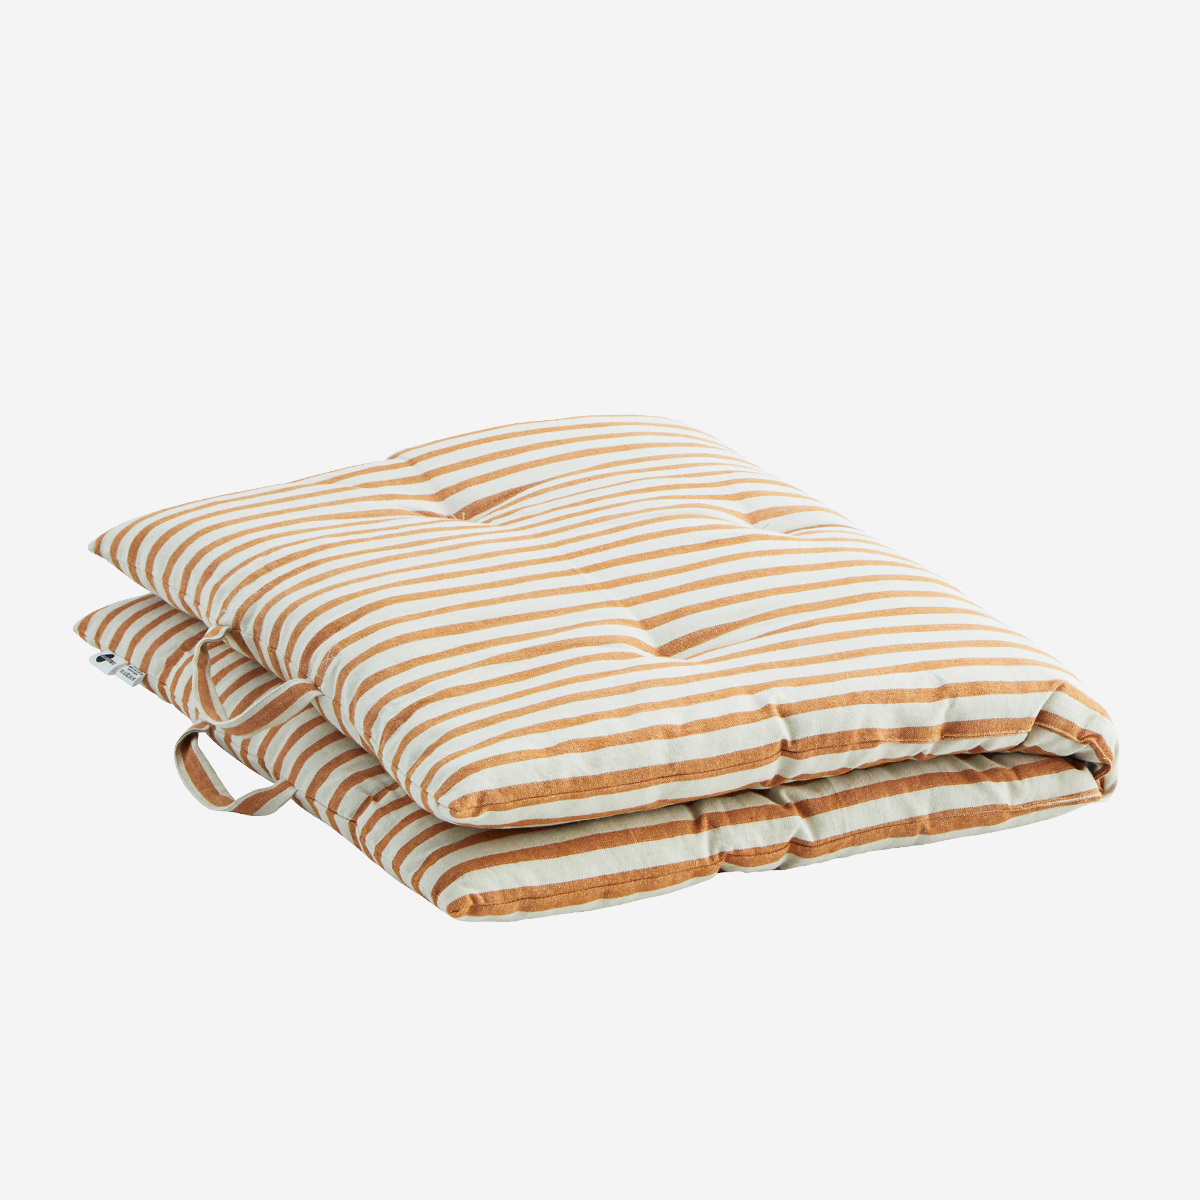 Madam Stoltz Striped Cotton Mattress